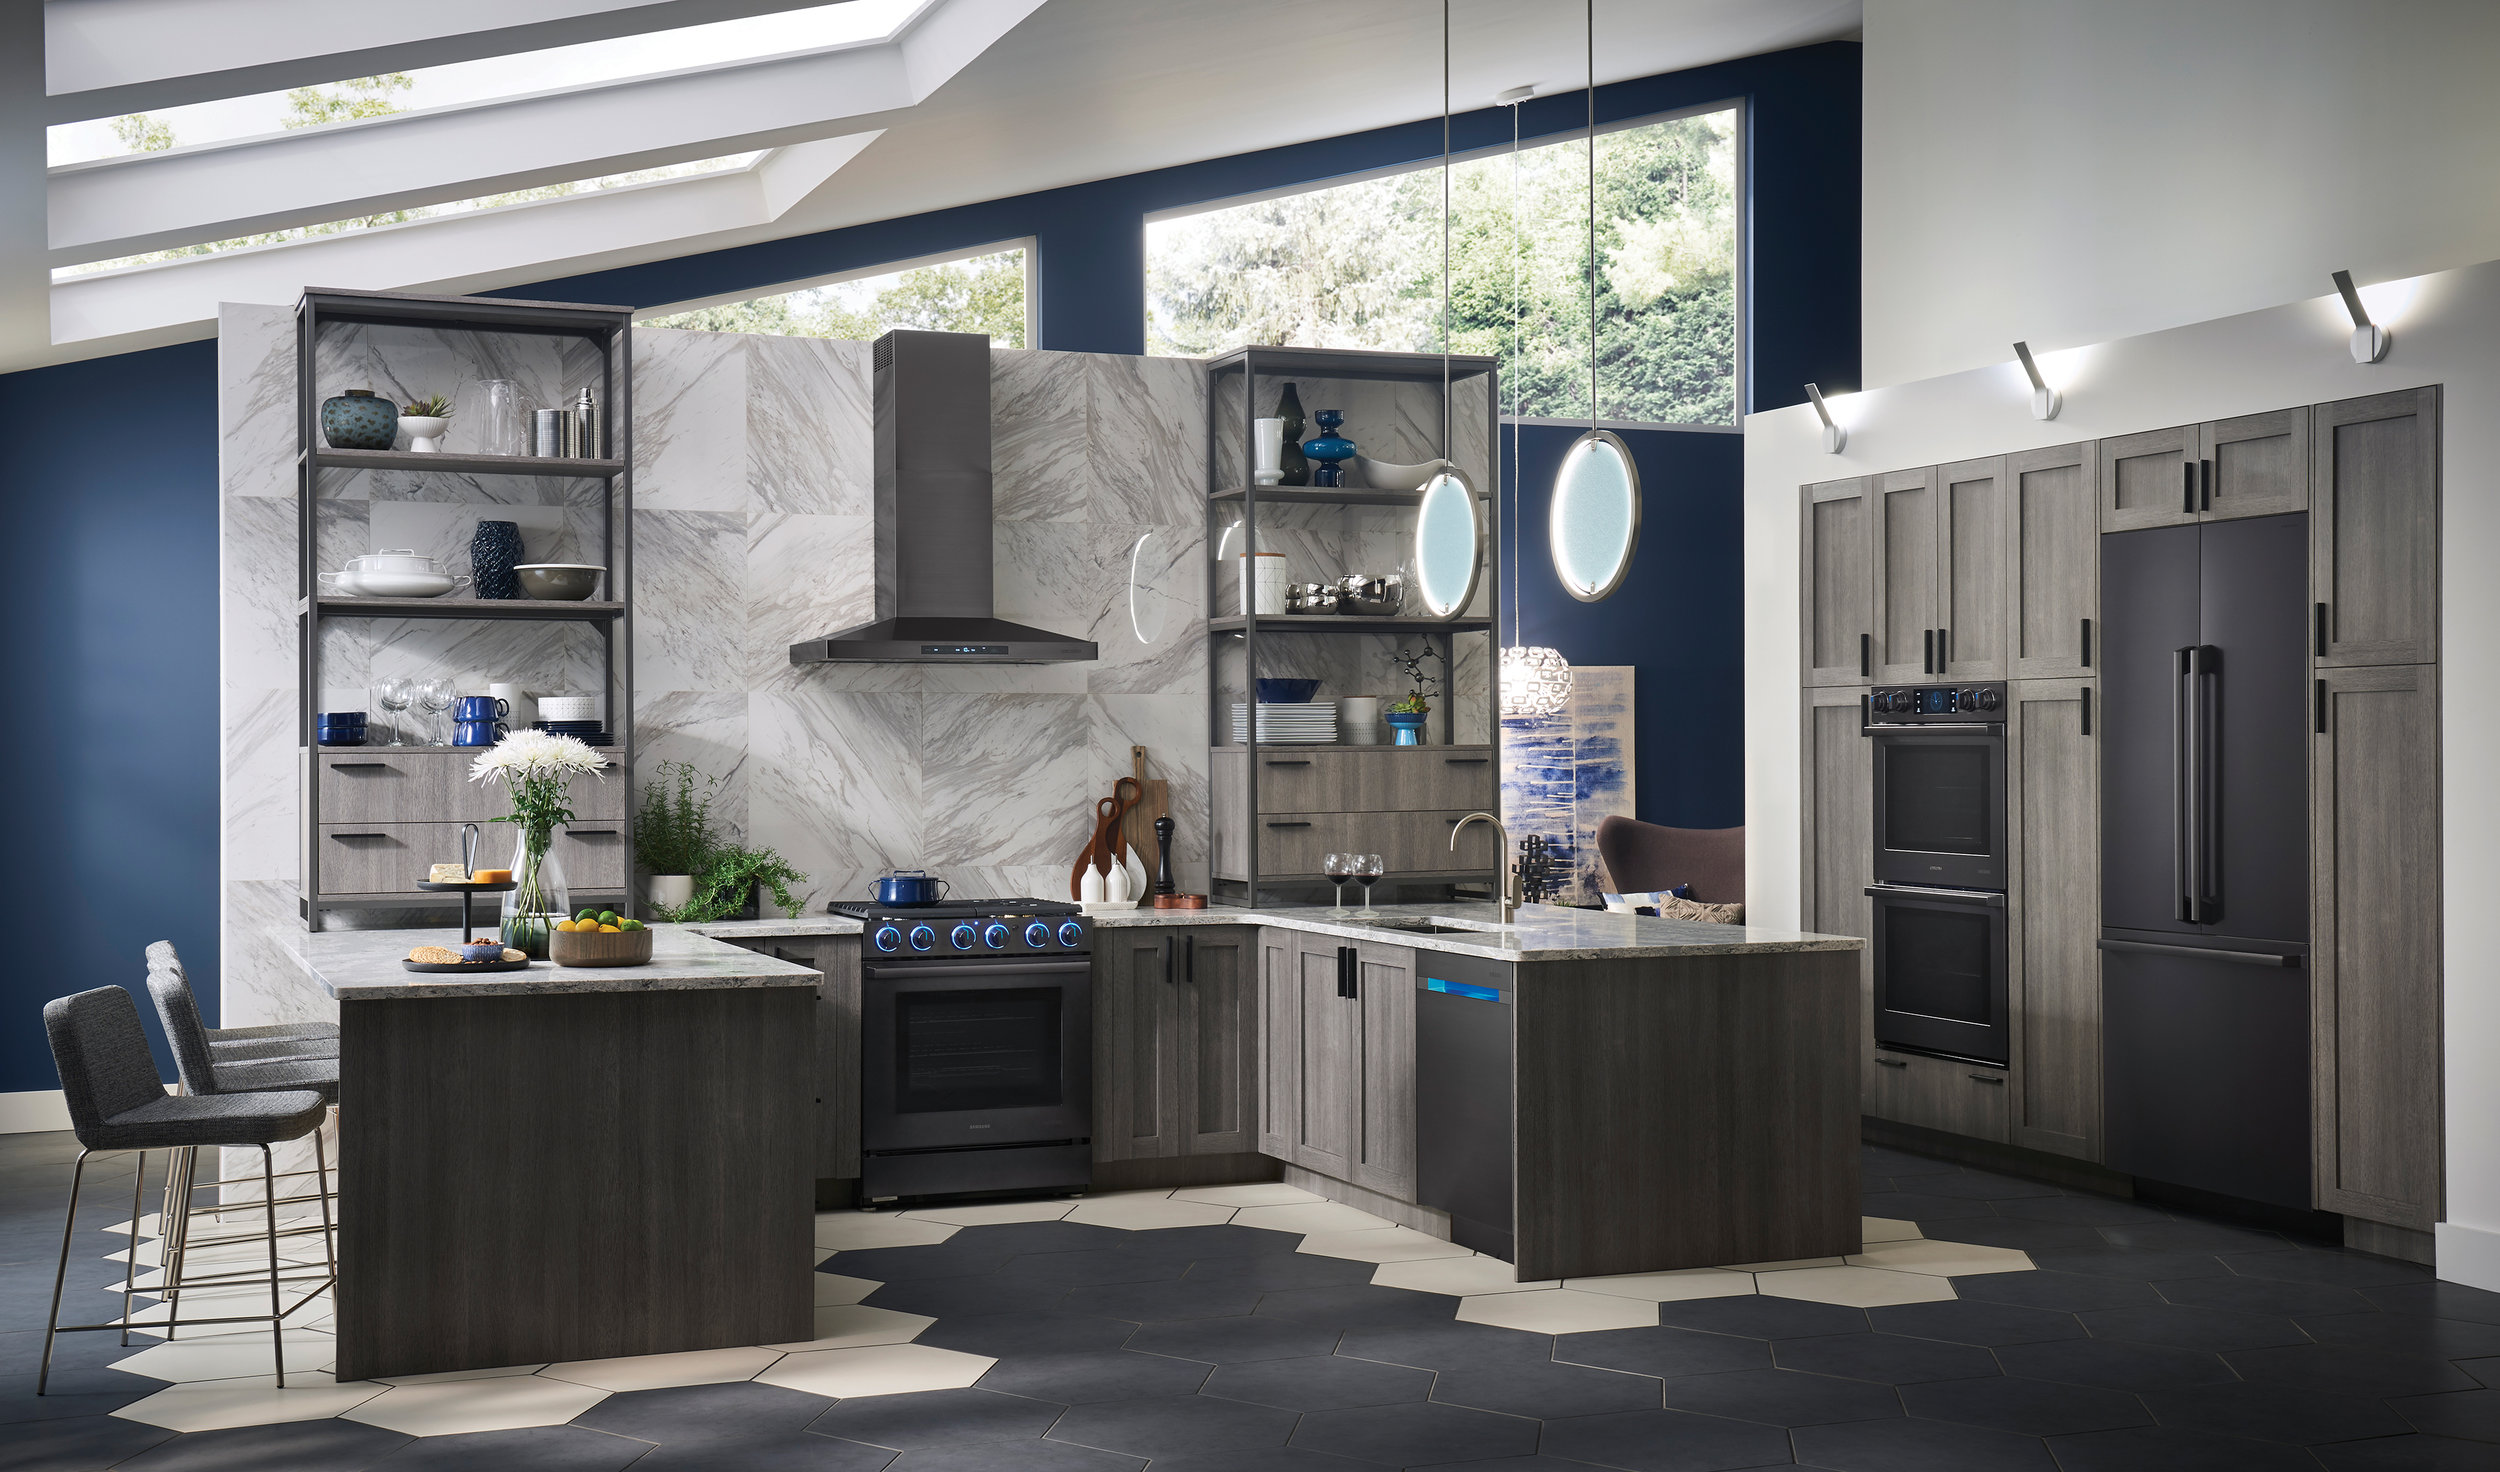 The Chef Collection by Samsung combines technology and efficiency throughout all your home's appliances.  Image courtesy of Samsung